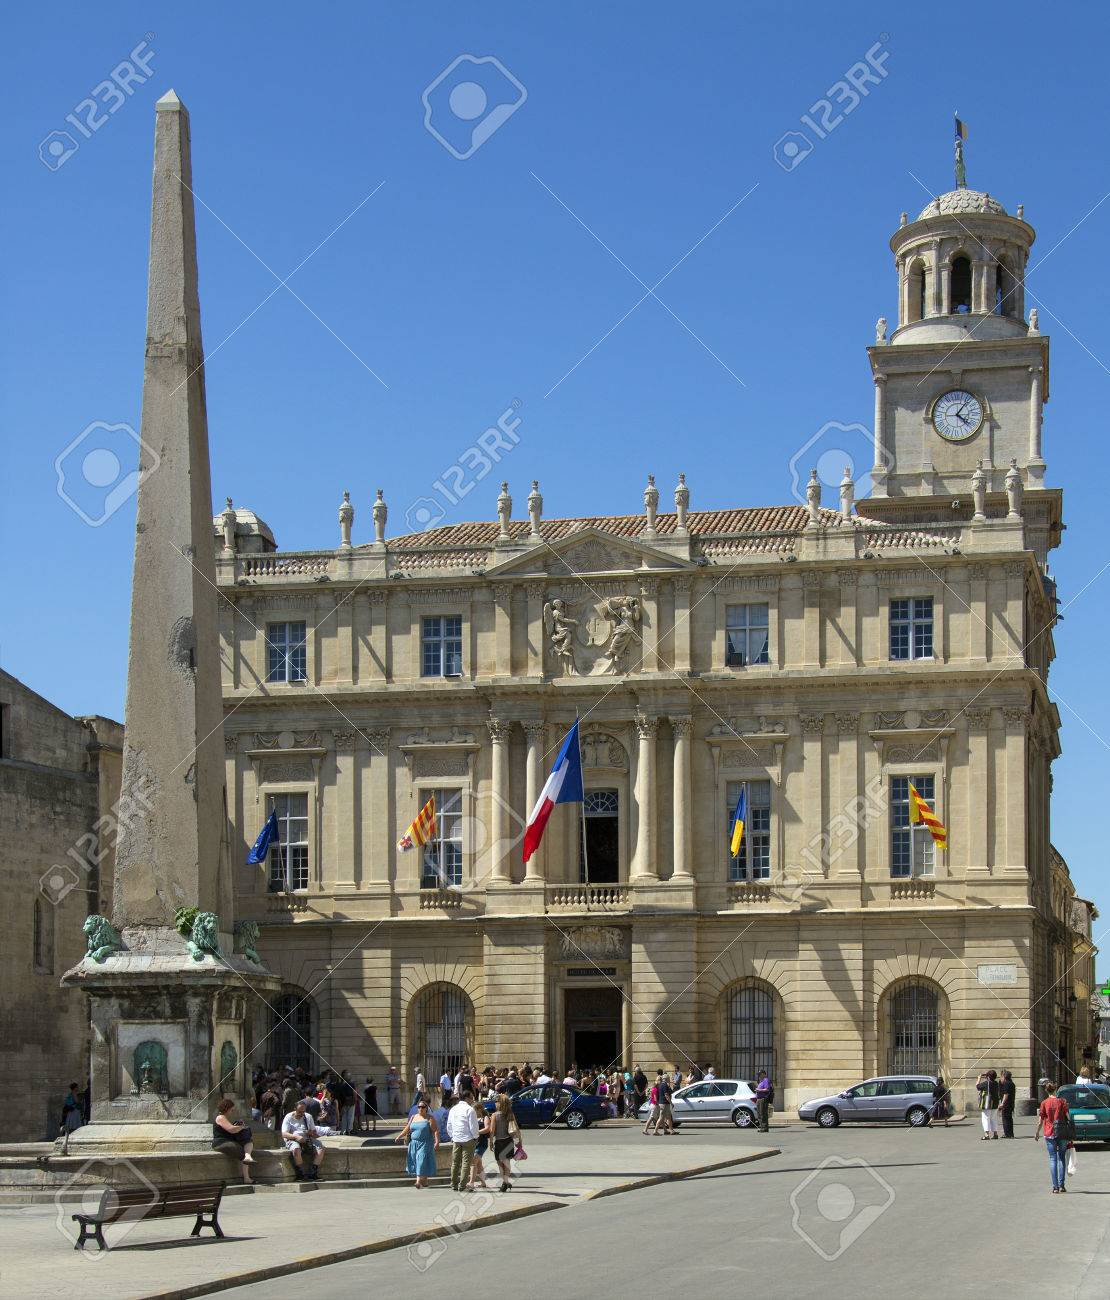 Region De La Provence The Hotel De Ville Town Hall In The Town Of Arles In The Provence